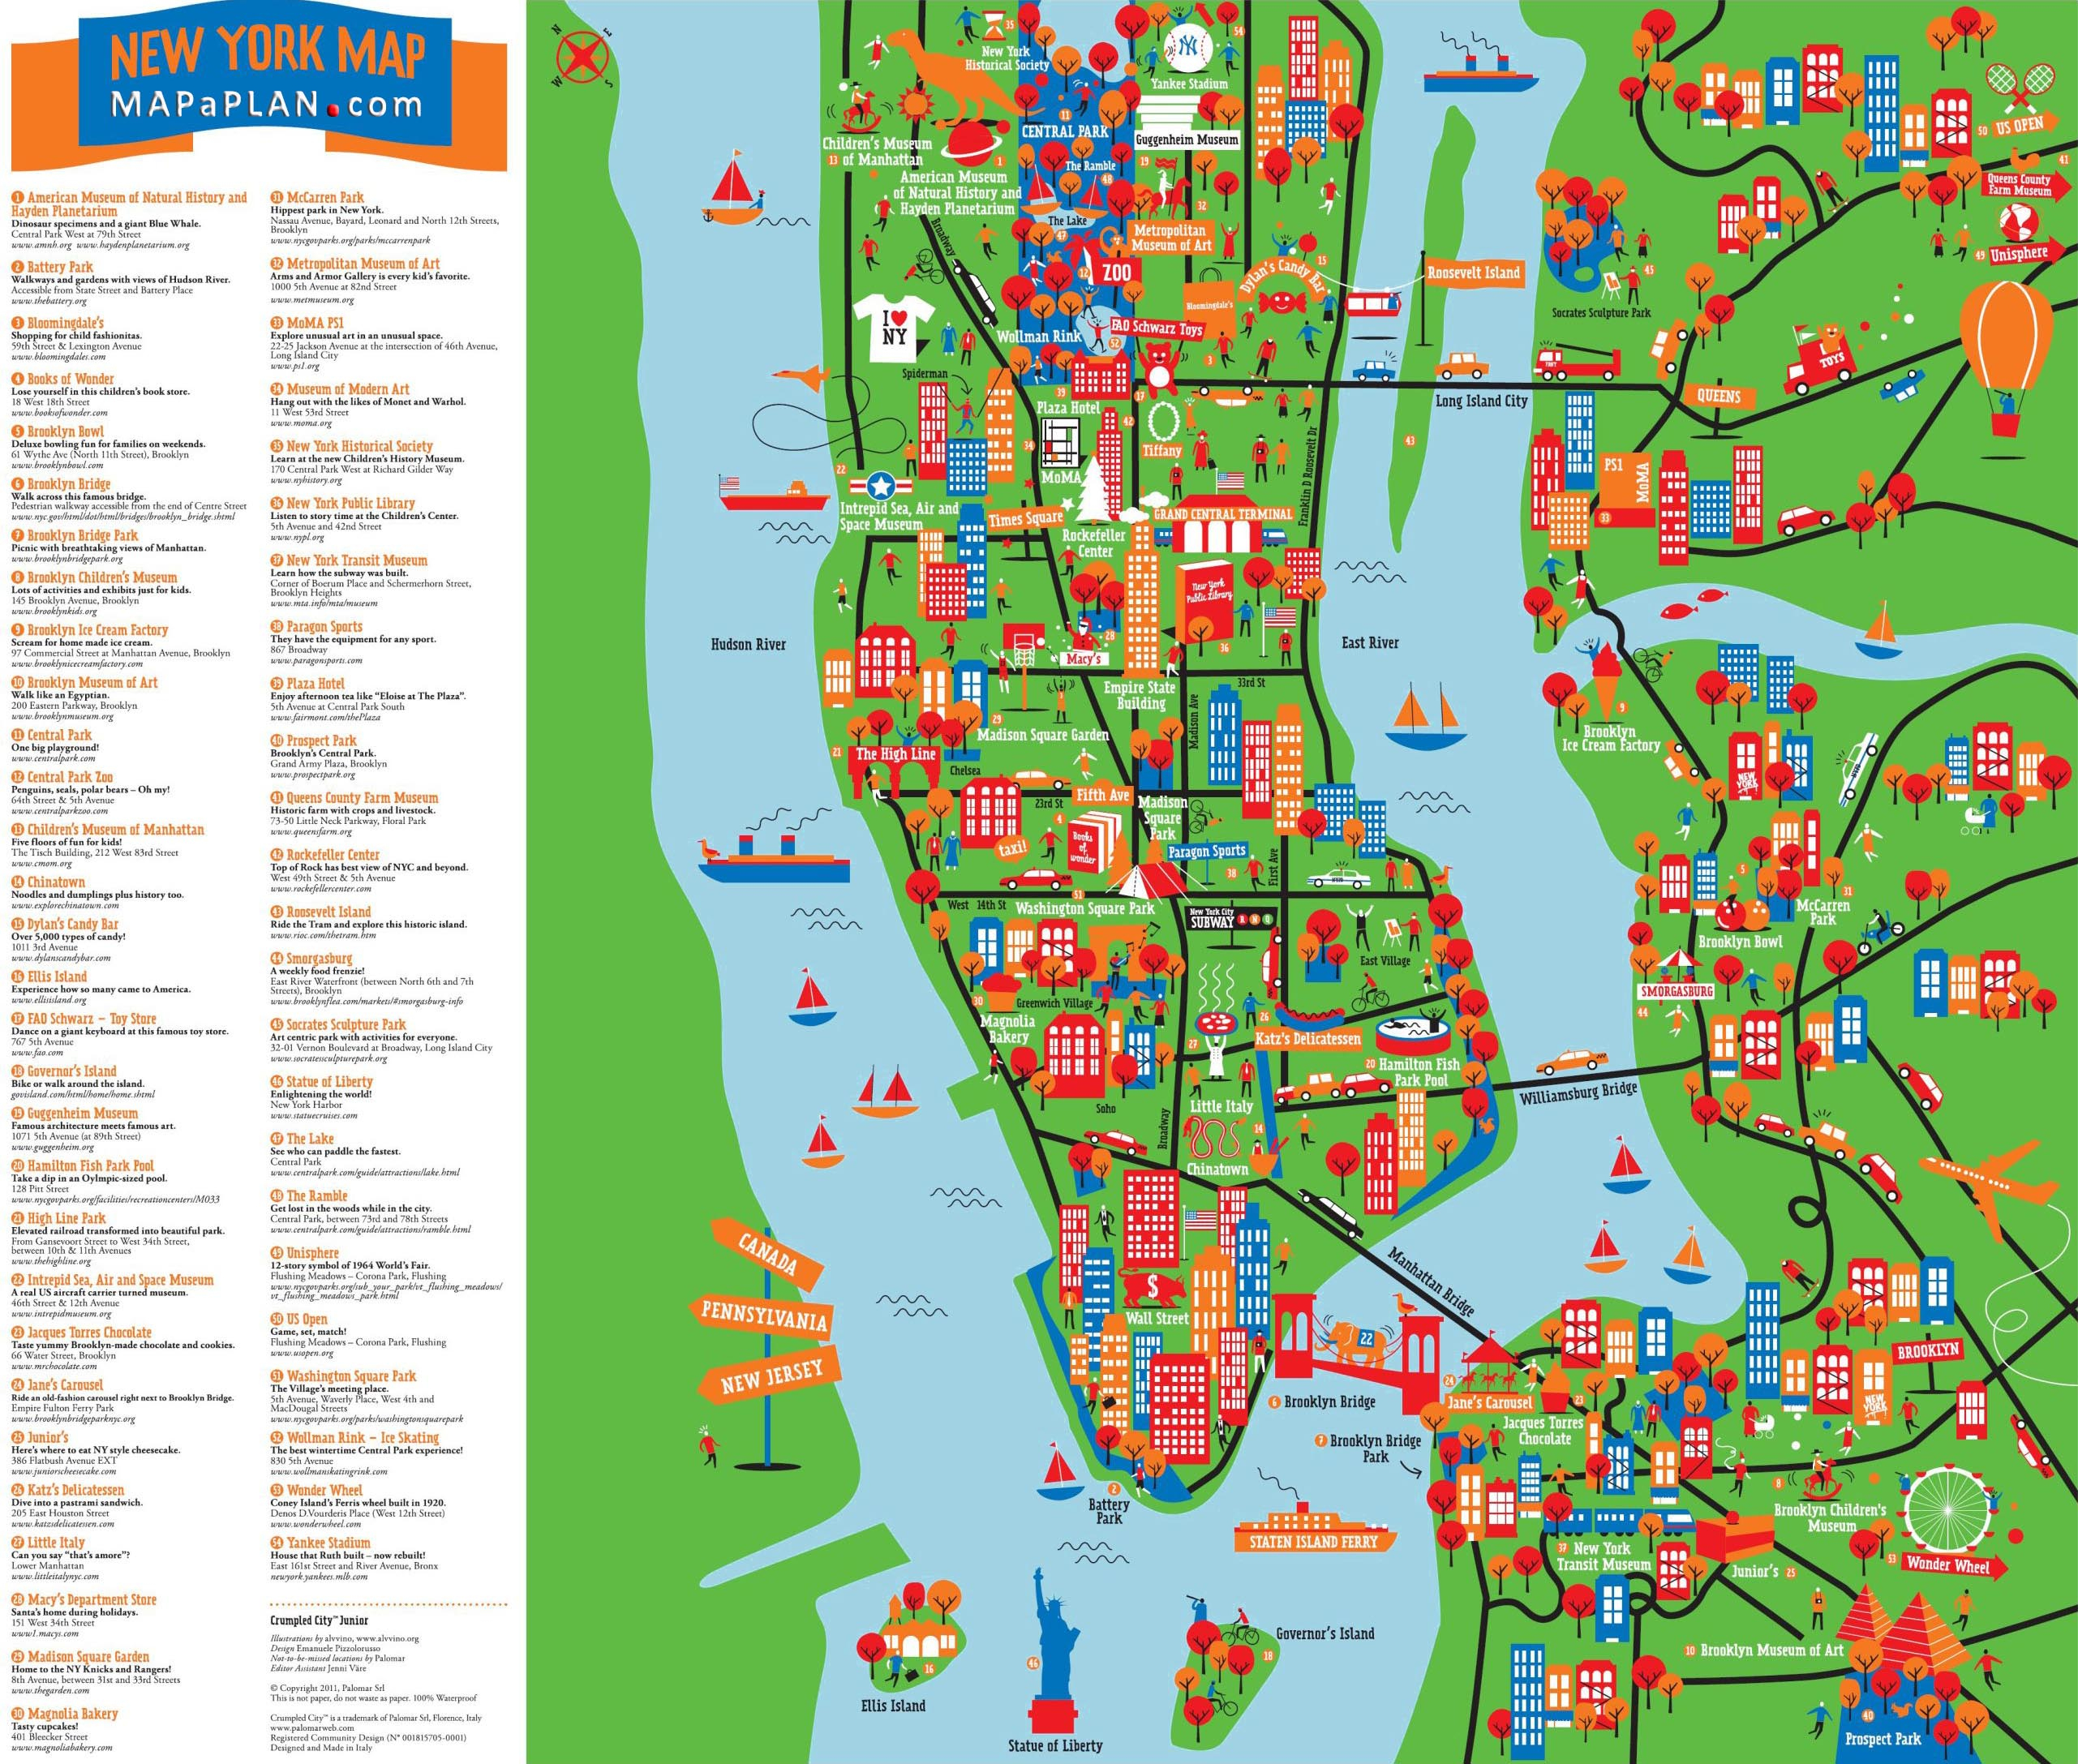 Map Of New York City Attractions Printable Download Map New York - Map Of Nyc Attractions Printable